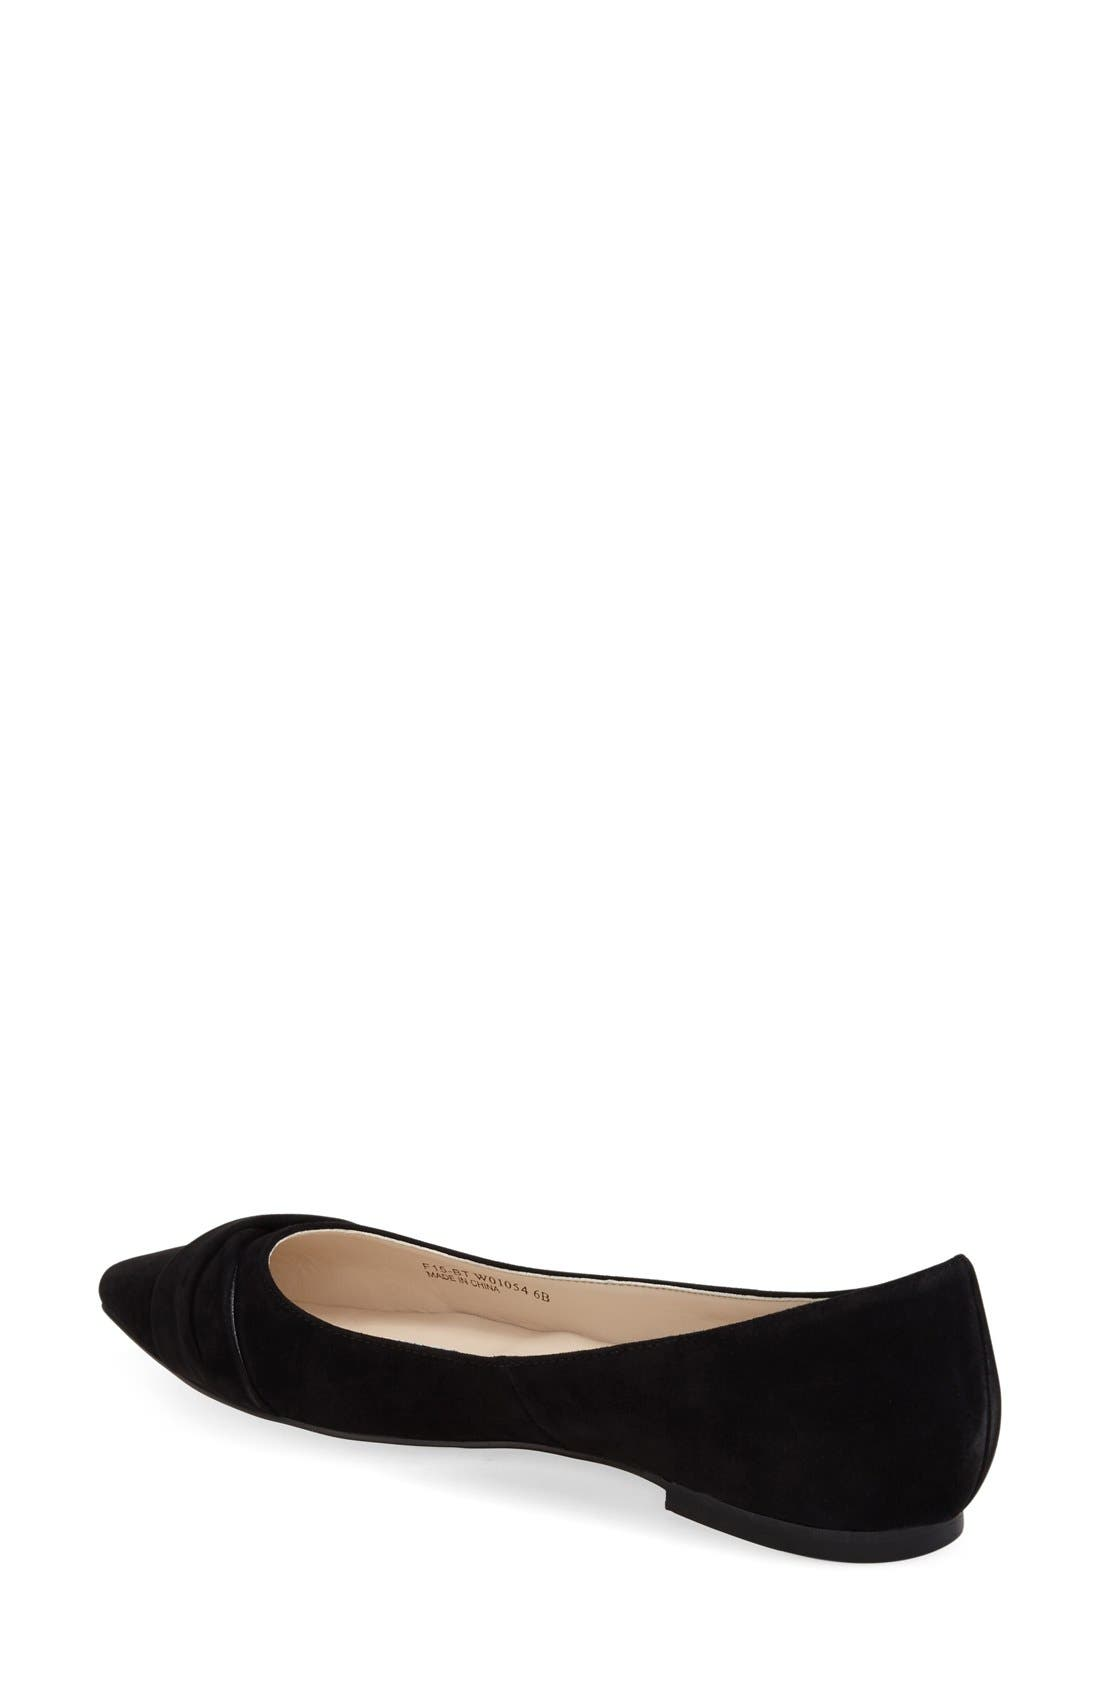 COLE HAAN,                             'Hadley' Skimmer Flat,                             Alternate thumbnail 4, color,                             001